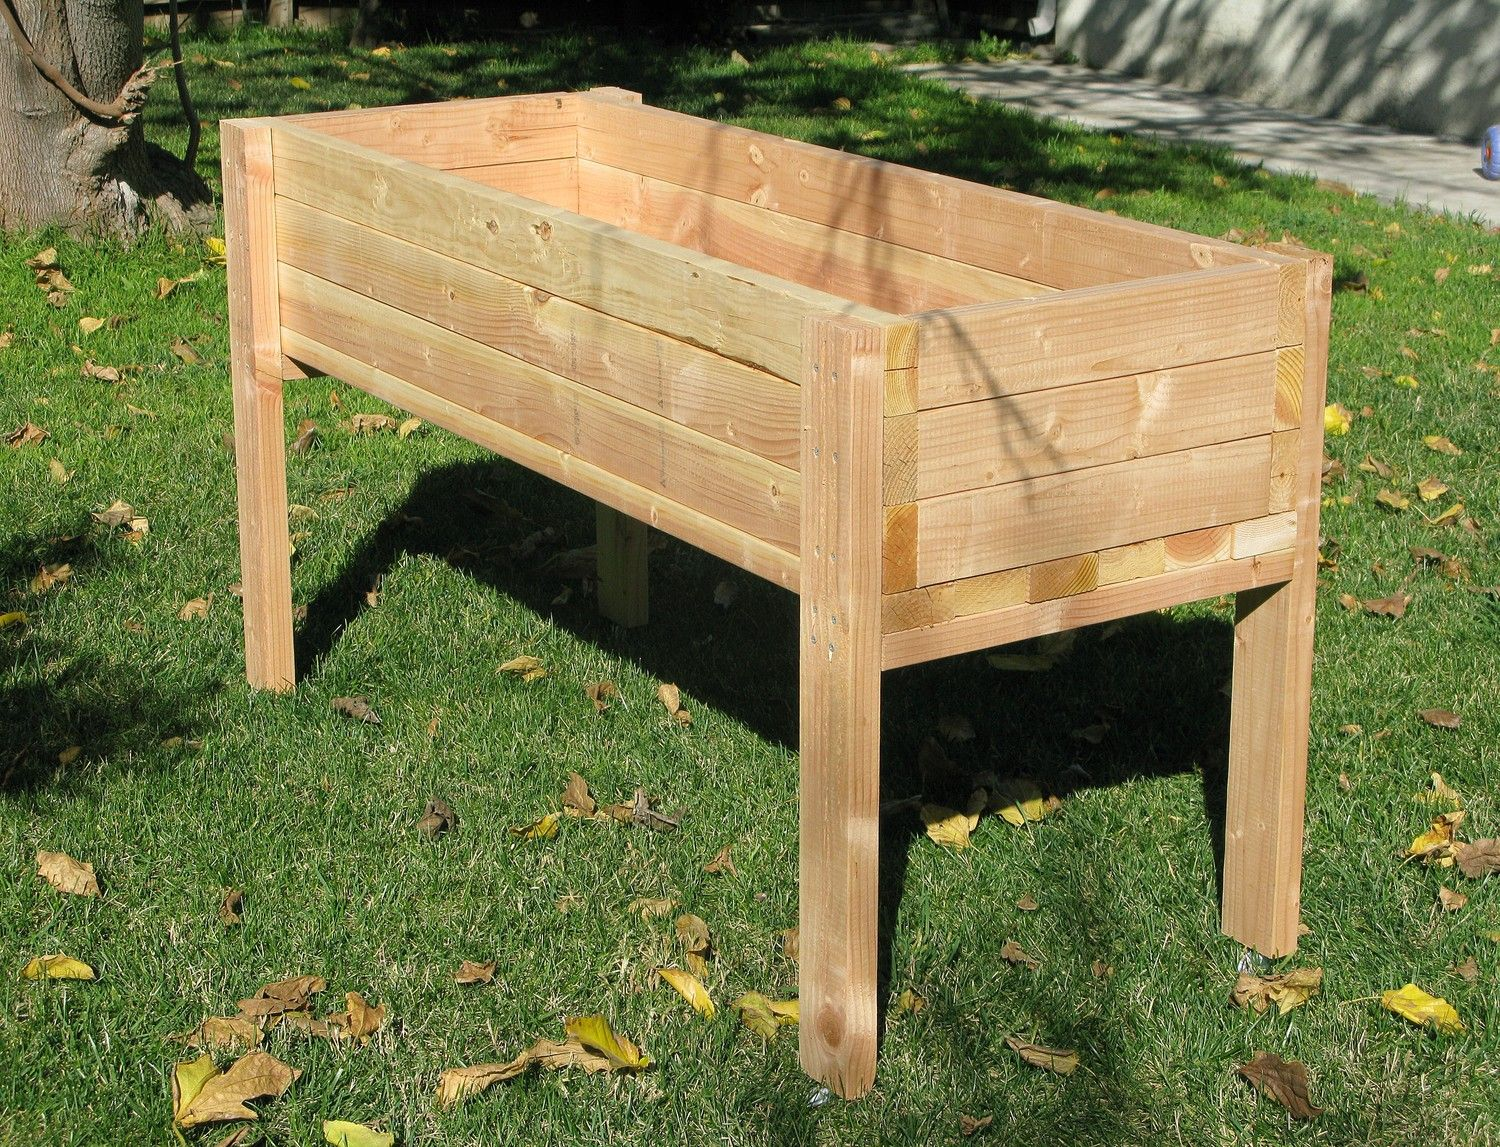 Living Green Planters Portable Elevated Planter Box I